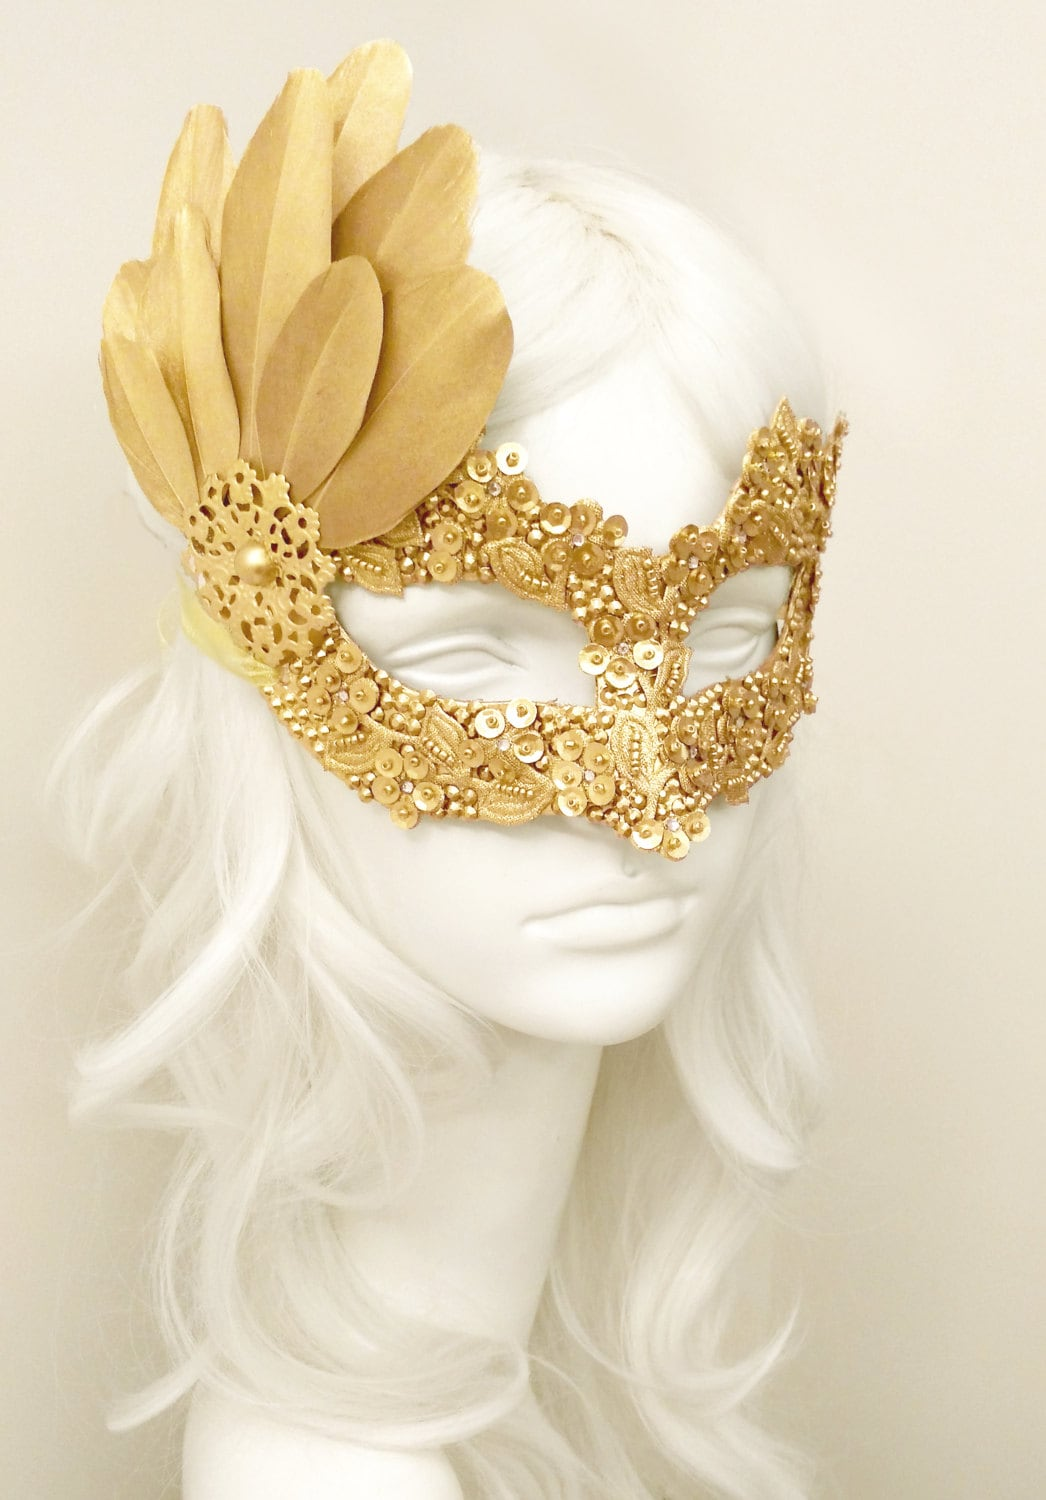 Sequined Gold Masquerade Mask With Rhinestones And Feathers | Etsy